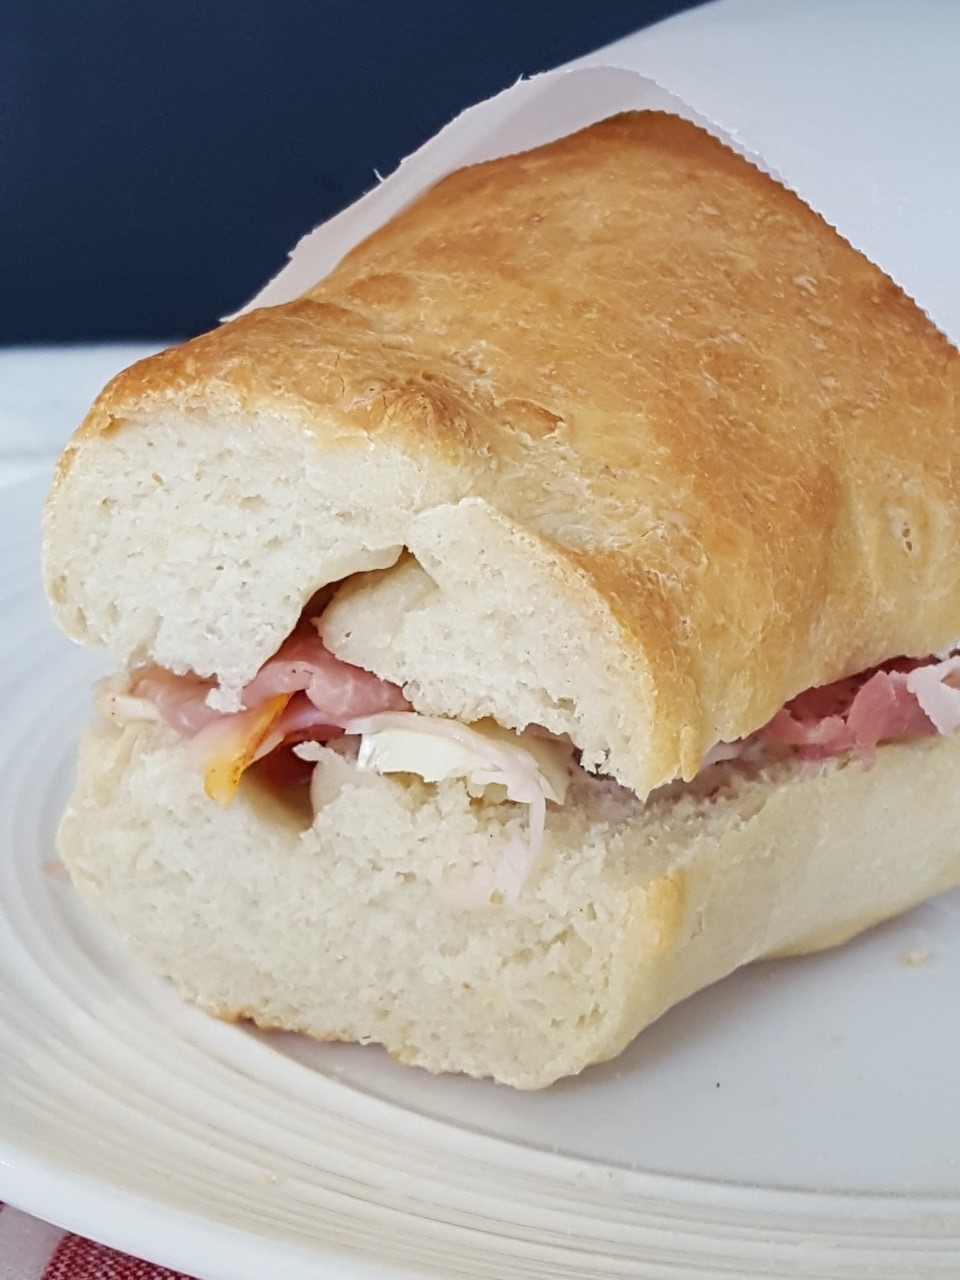 baguettes and French Kiss sandwiches